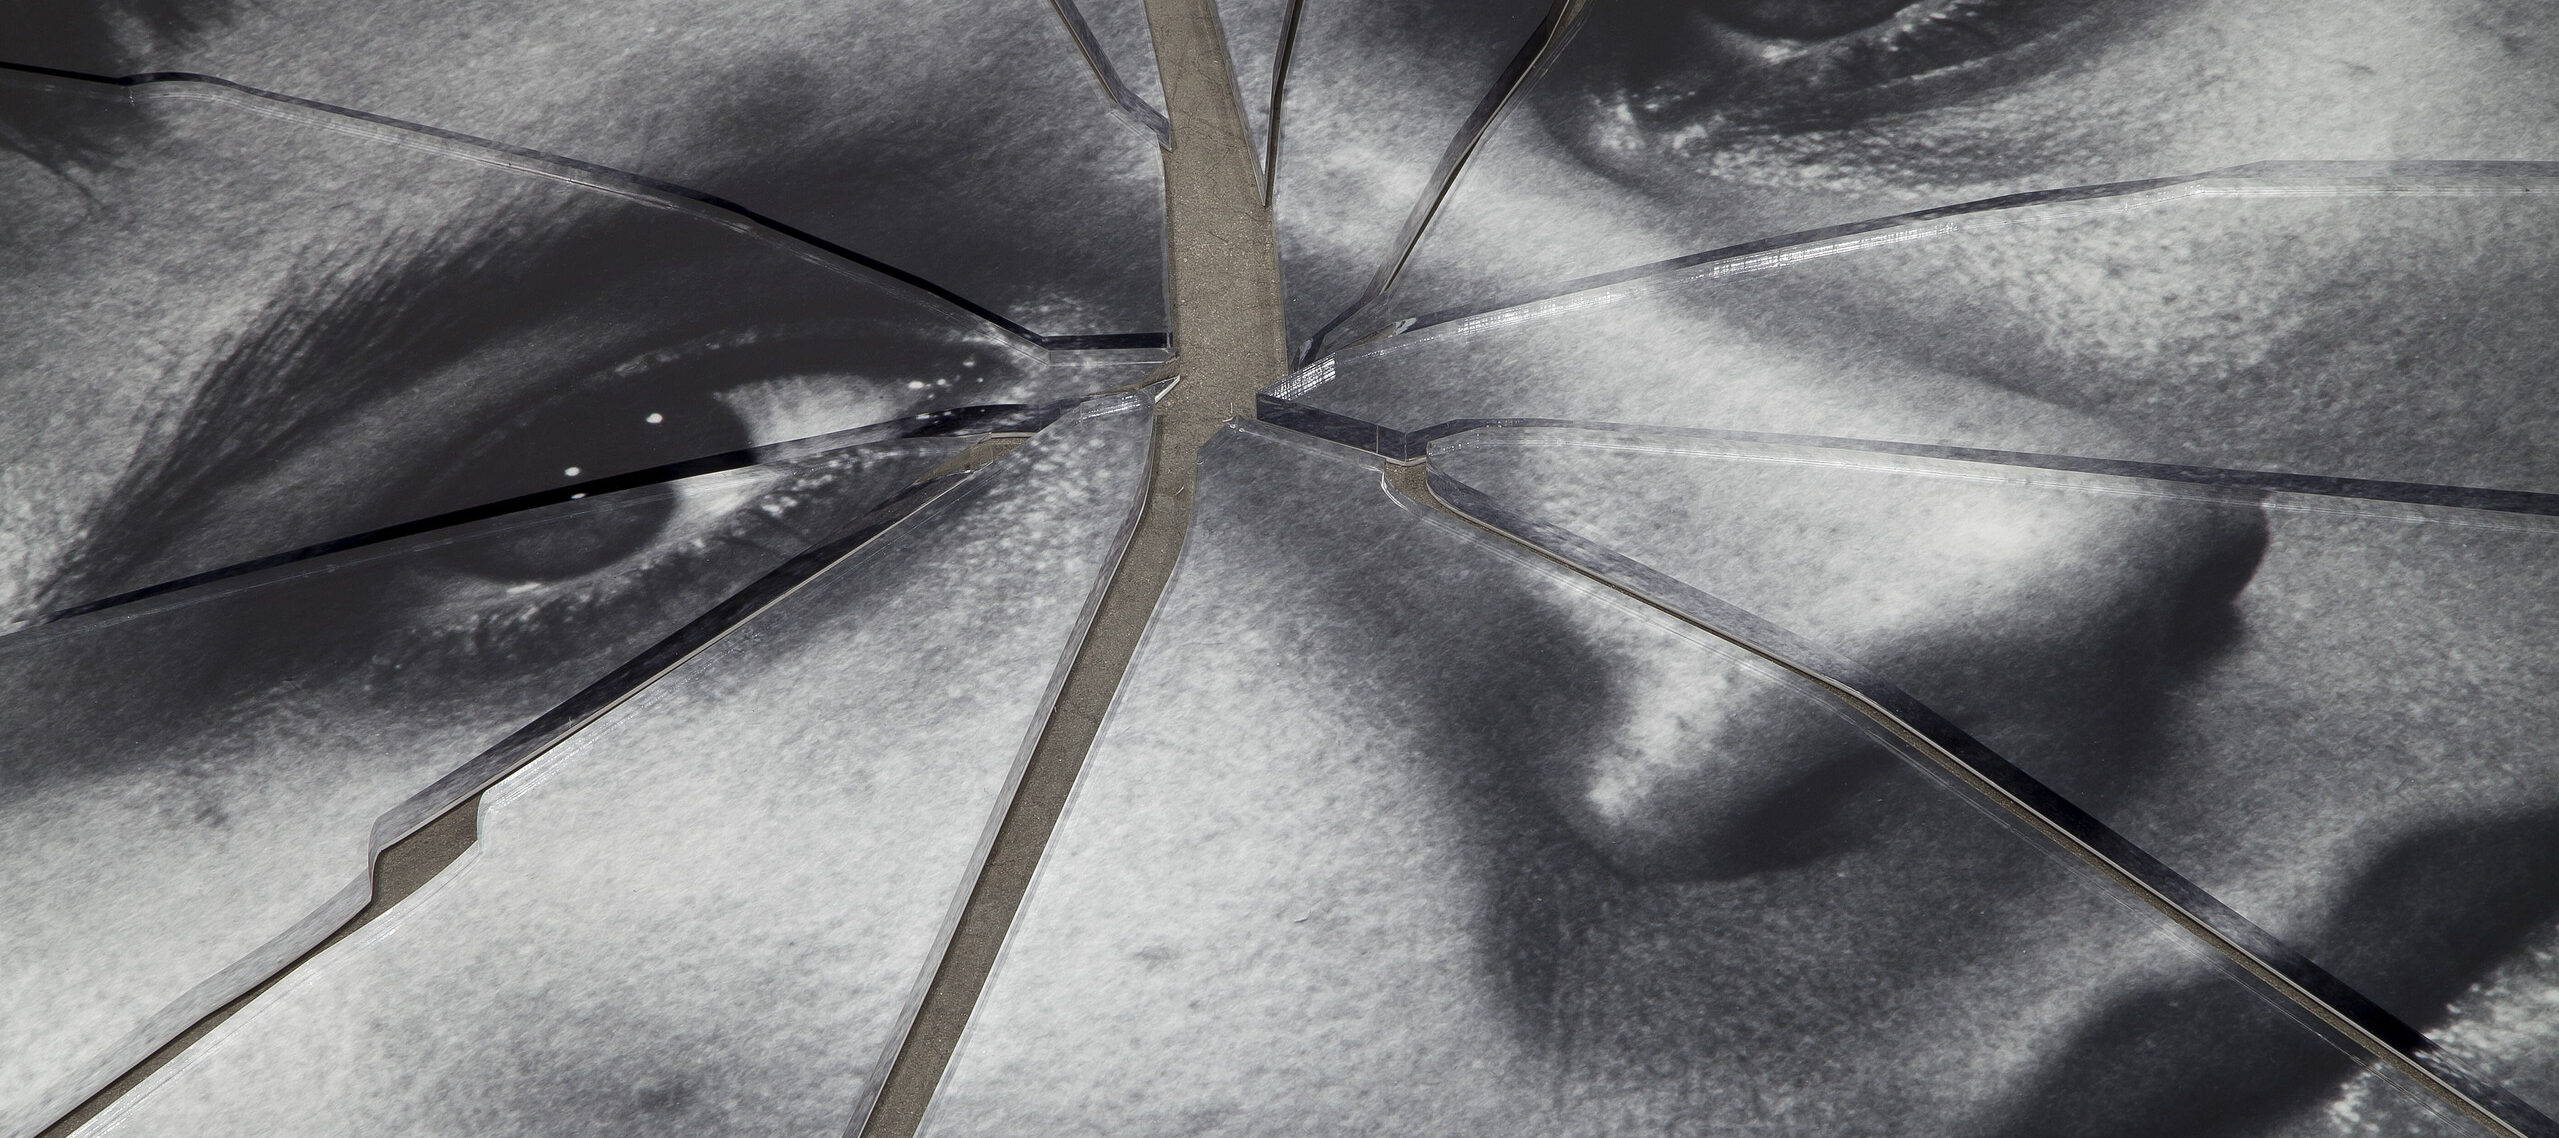 A detail shot of a black-and-white image of a person's face printed on plexiglas that has been shattered in the center.